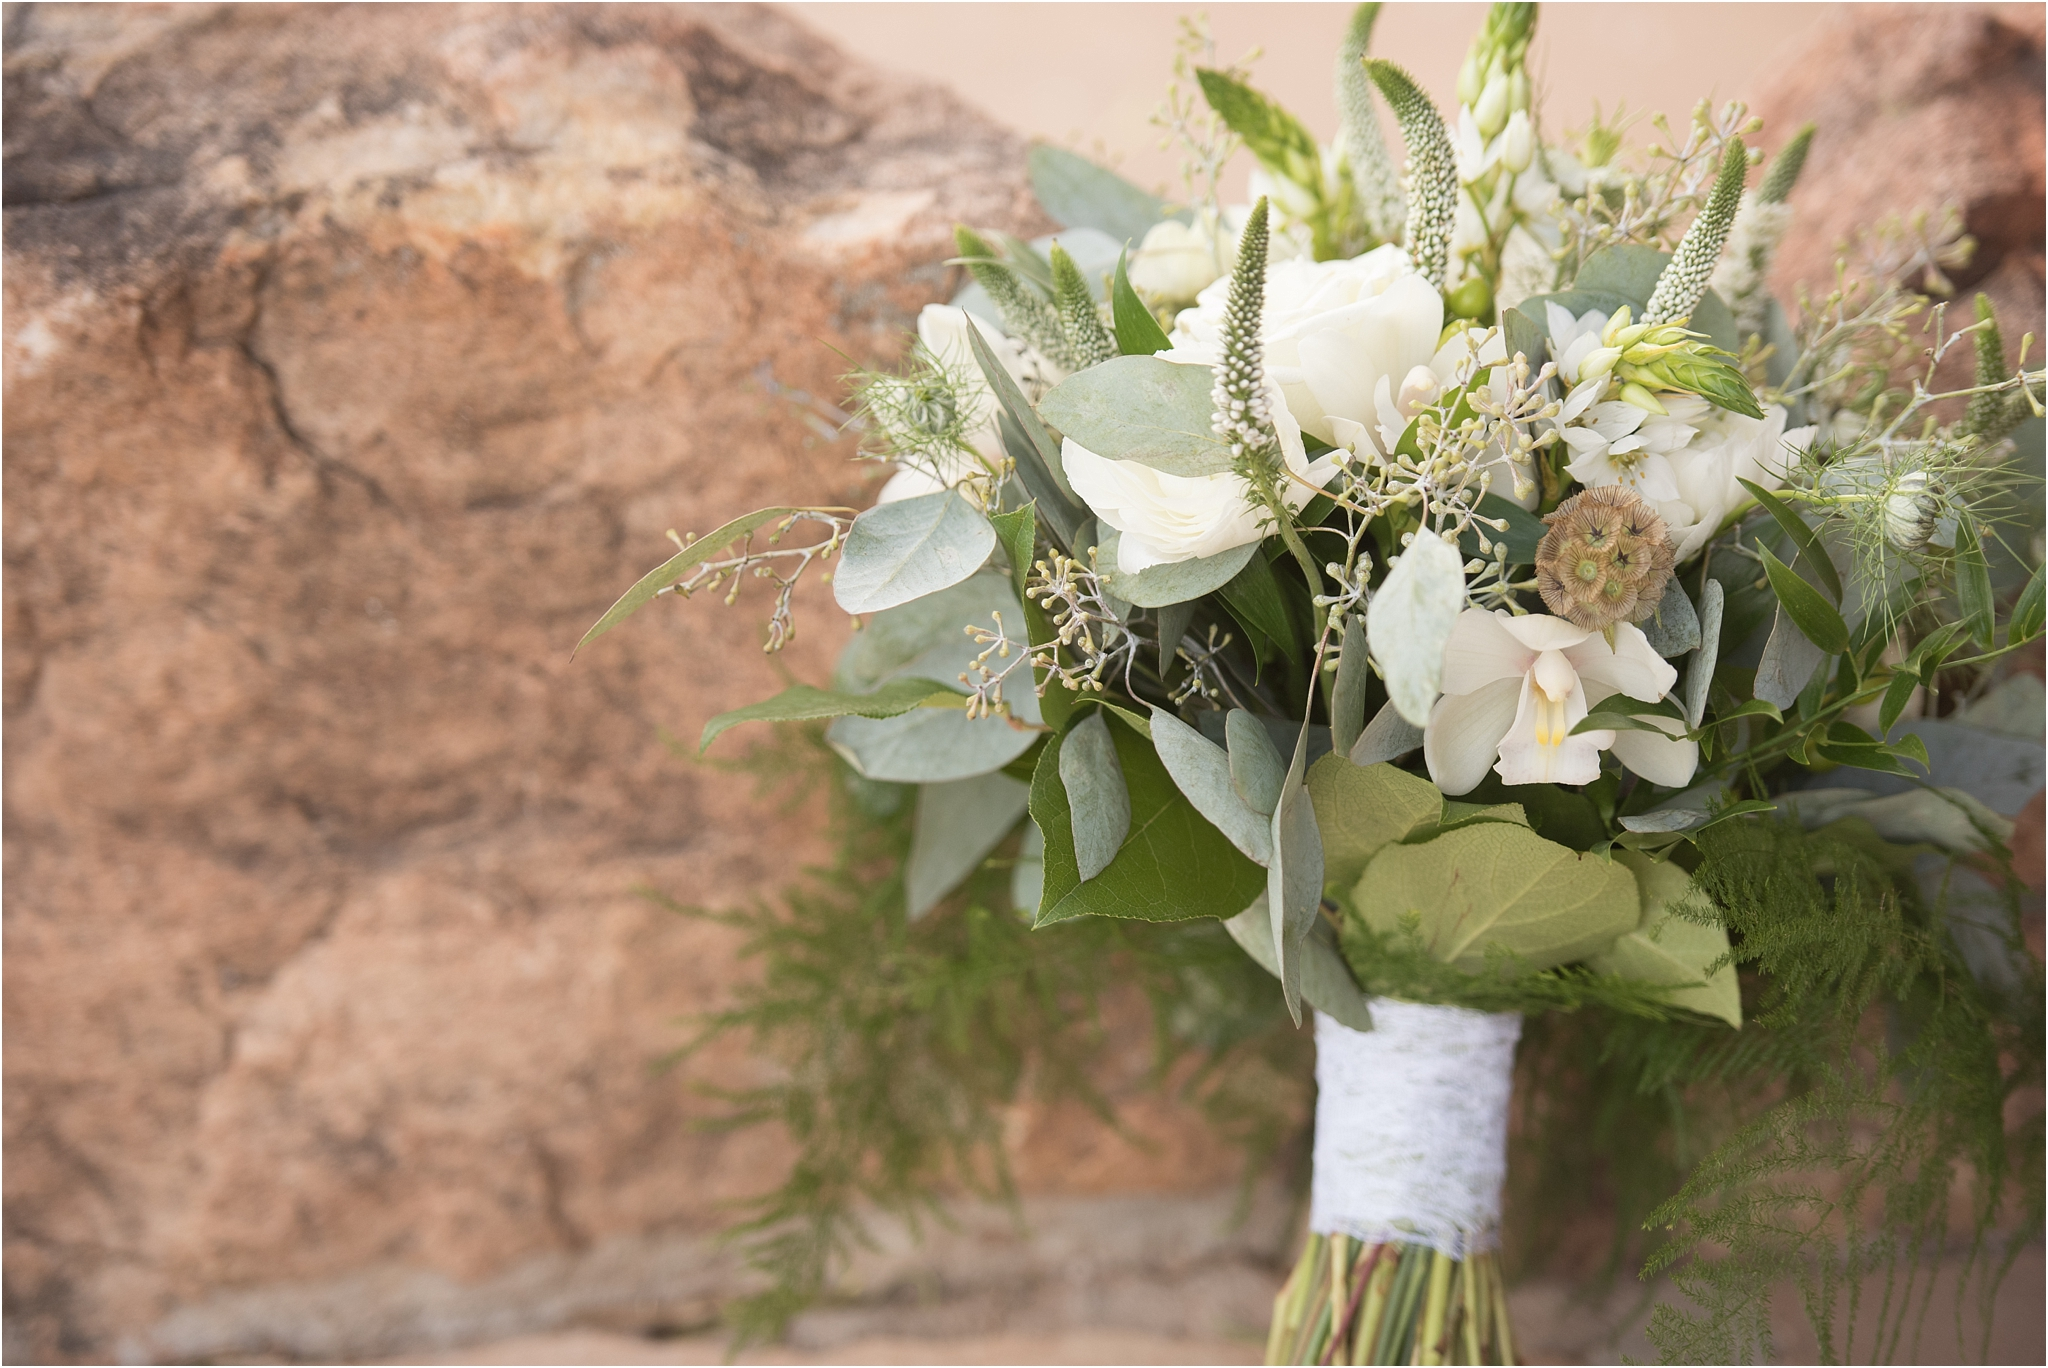 kayla kitts photography - albuquerque wedding photographer - new mexico wedding photographer - desination wedding photographer - cabo wedding photographer_0054.jpg